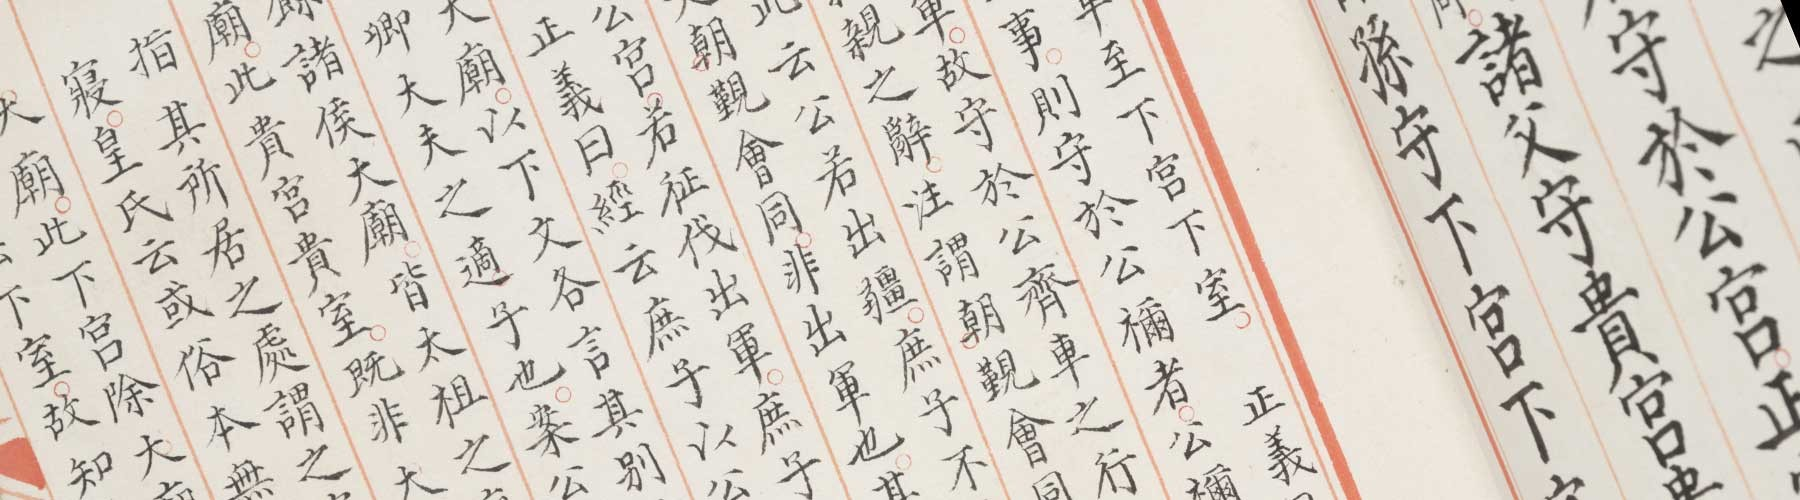 Chinese writing from Yongle Encyclopedia